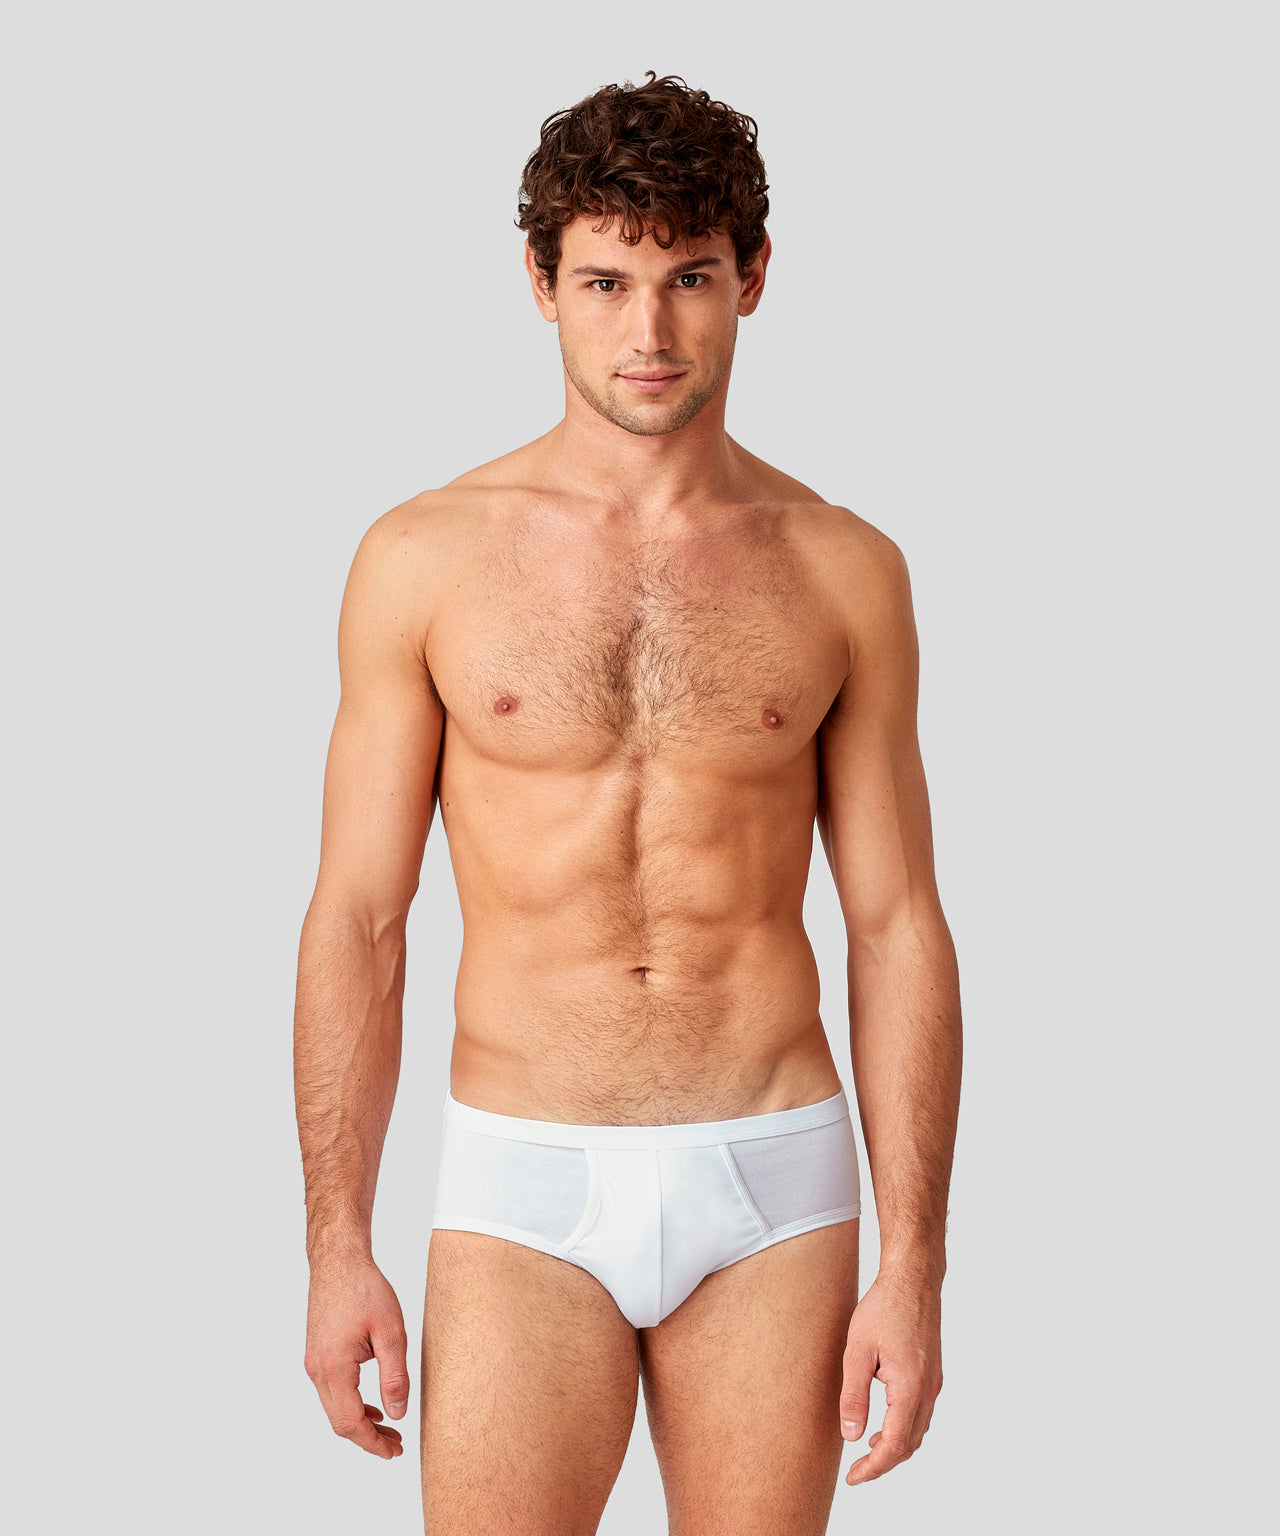 747 Y-Front Briefs Discovery Kit - white